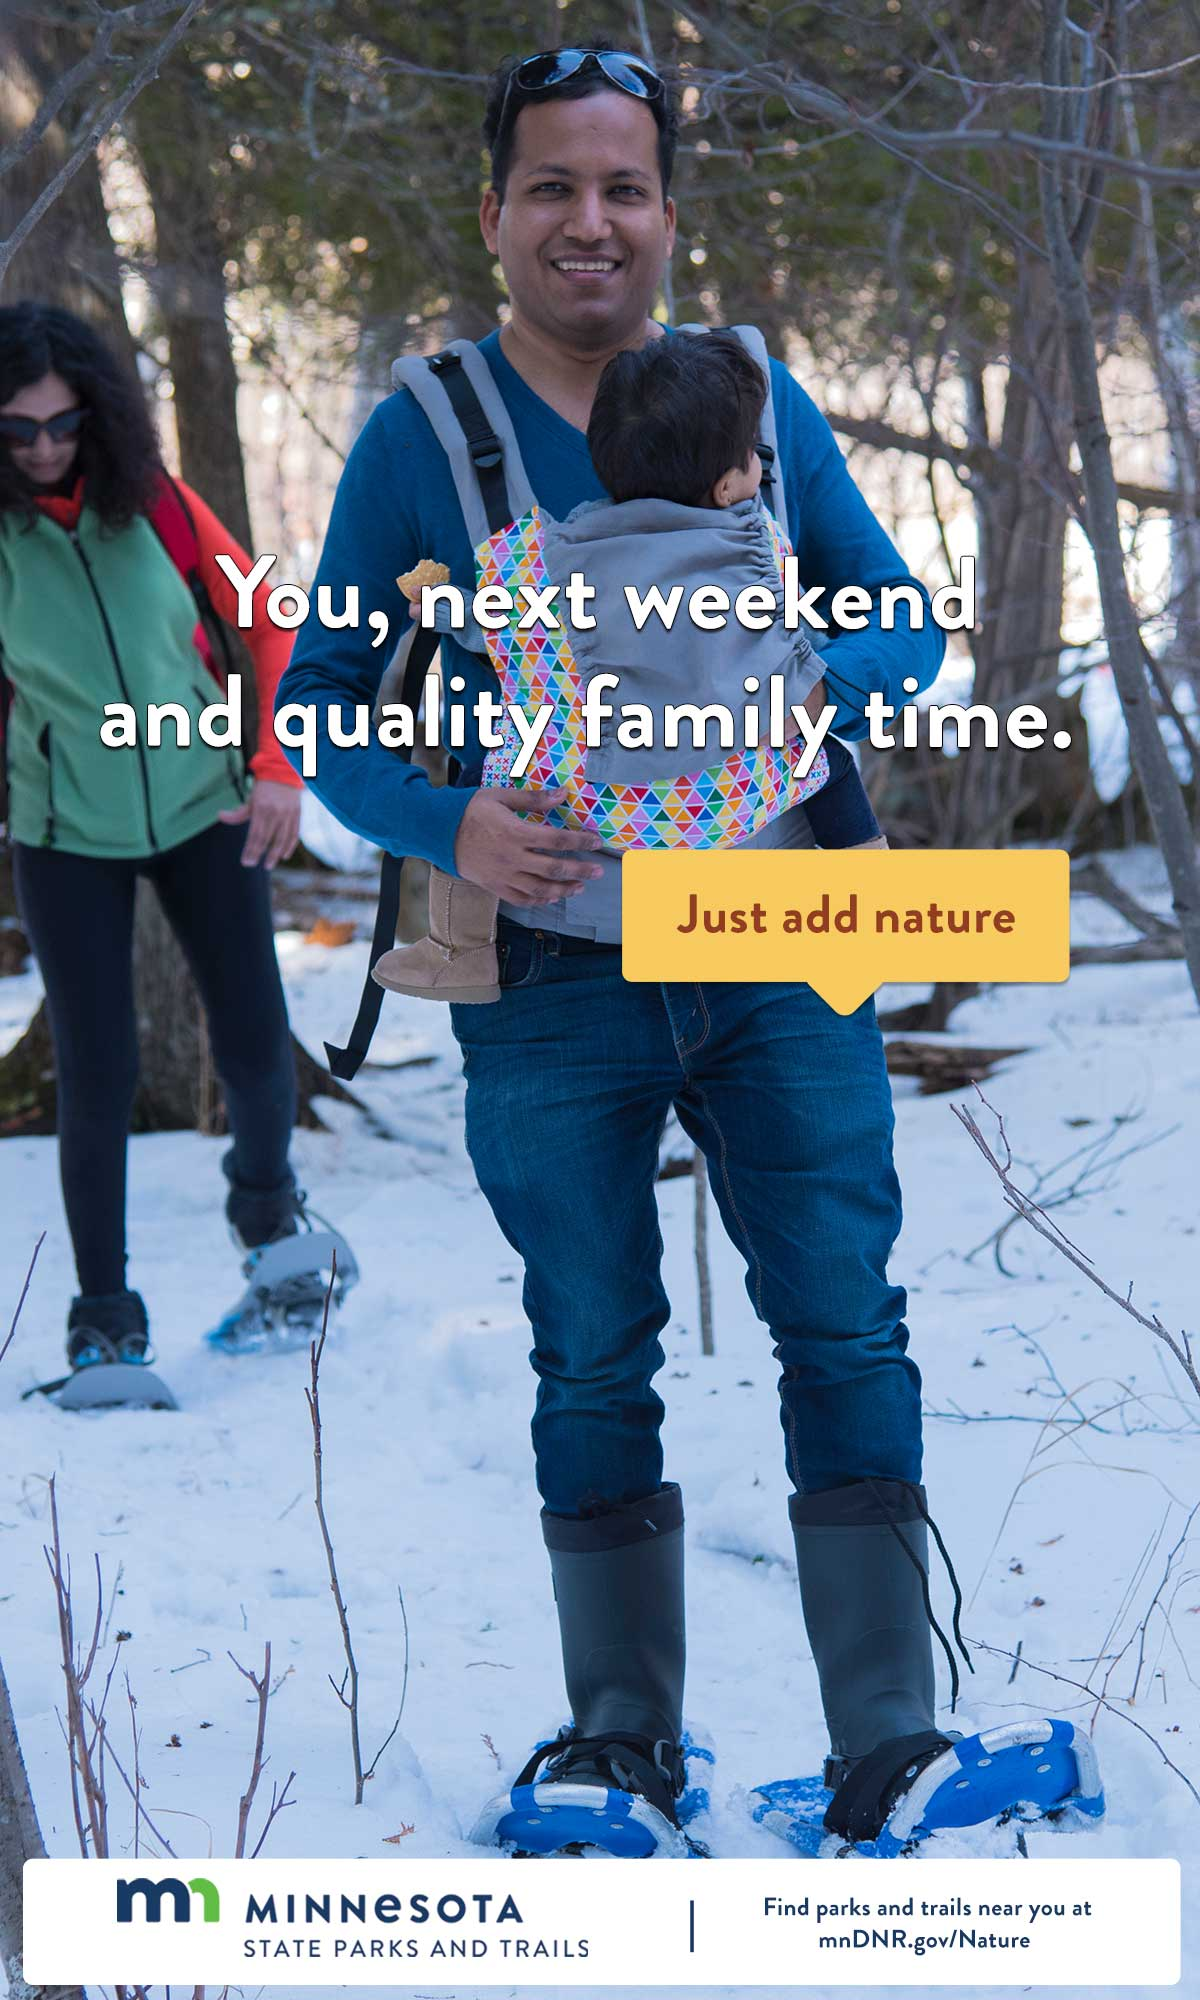 You, next weekend and quality family time. Just add nature.